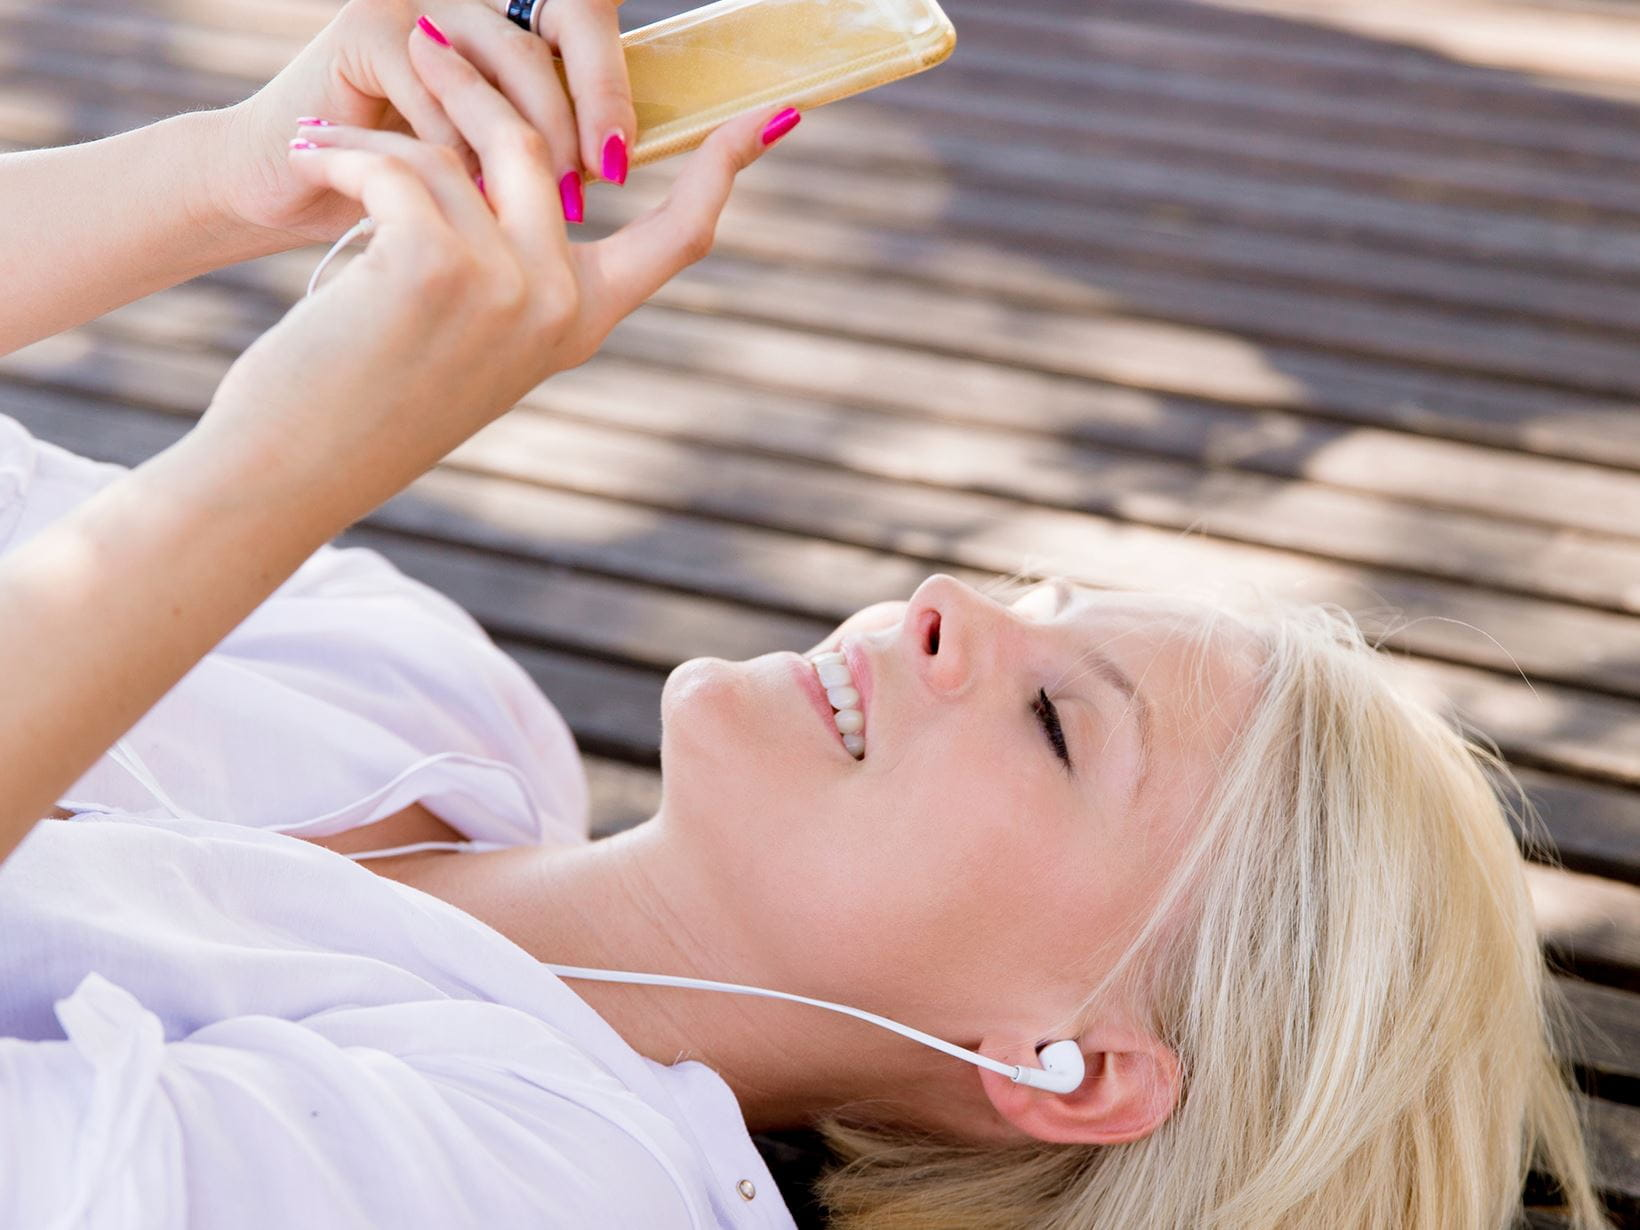 lady listening to music from her phone